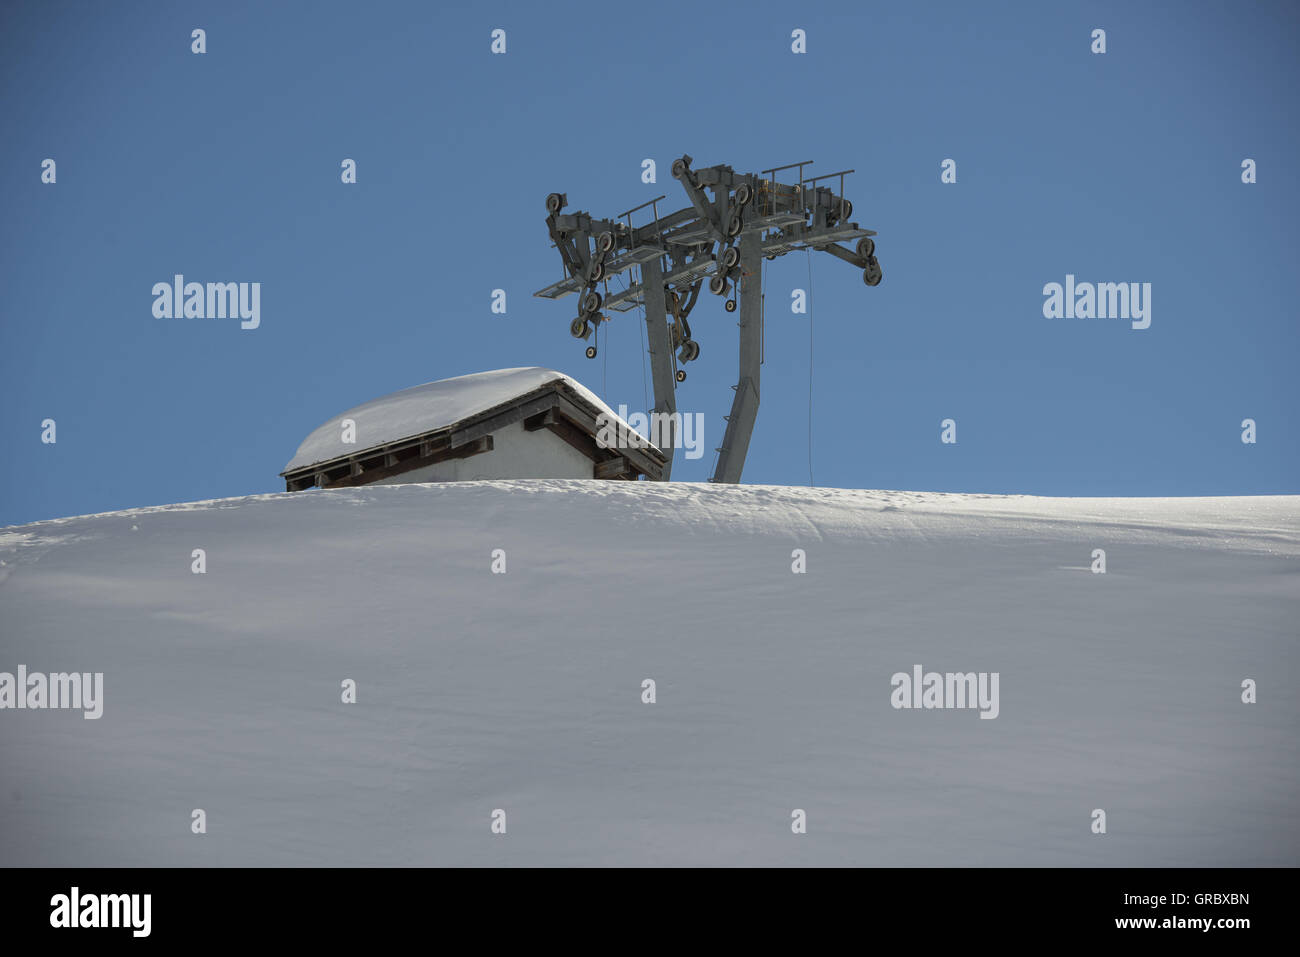 Snowcovered Slope With Old Discarded Skiliftpole, Roof And Blue Sky - Stock Image